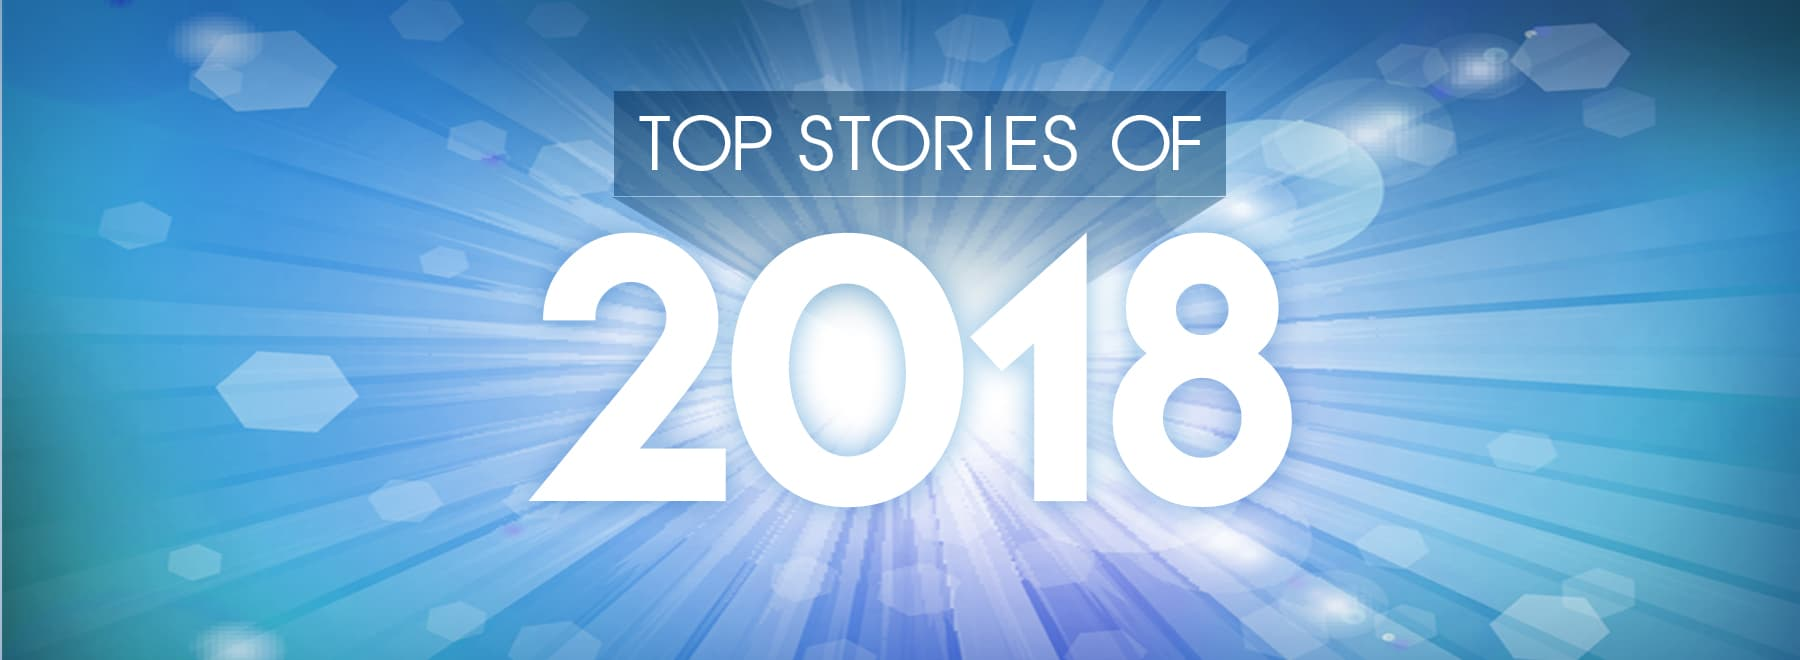 Firsts Records Dot Ummc S 2018 Top Stories List University Of